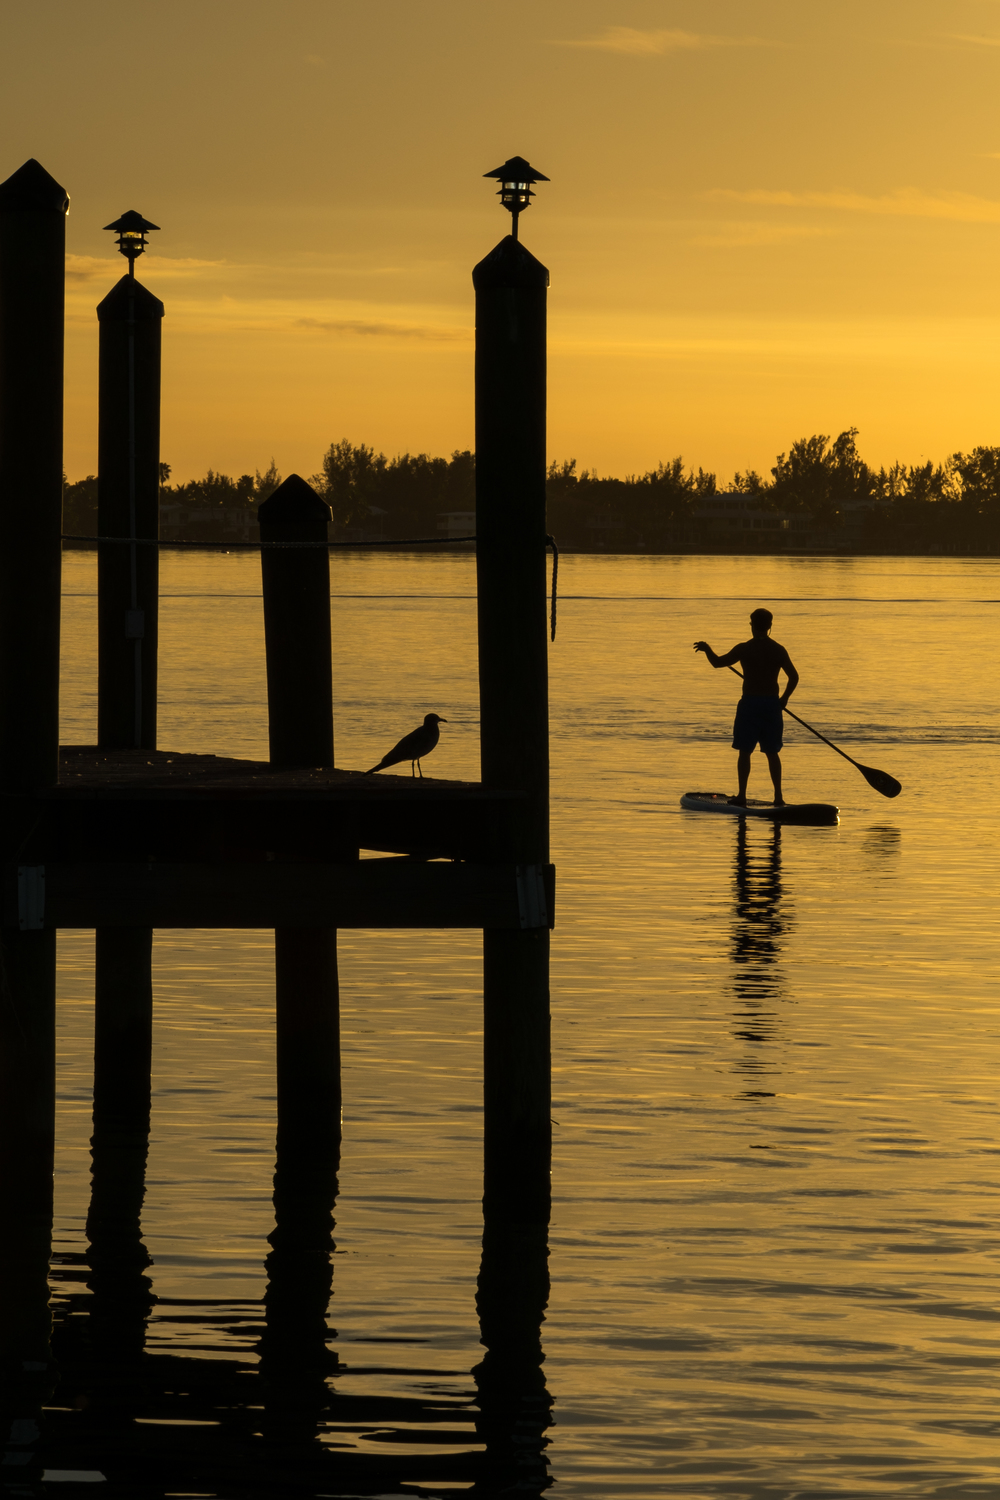 A stand up paddleboarder graces the water during sunset.